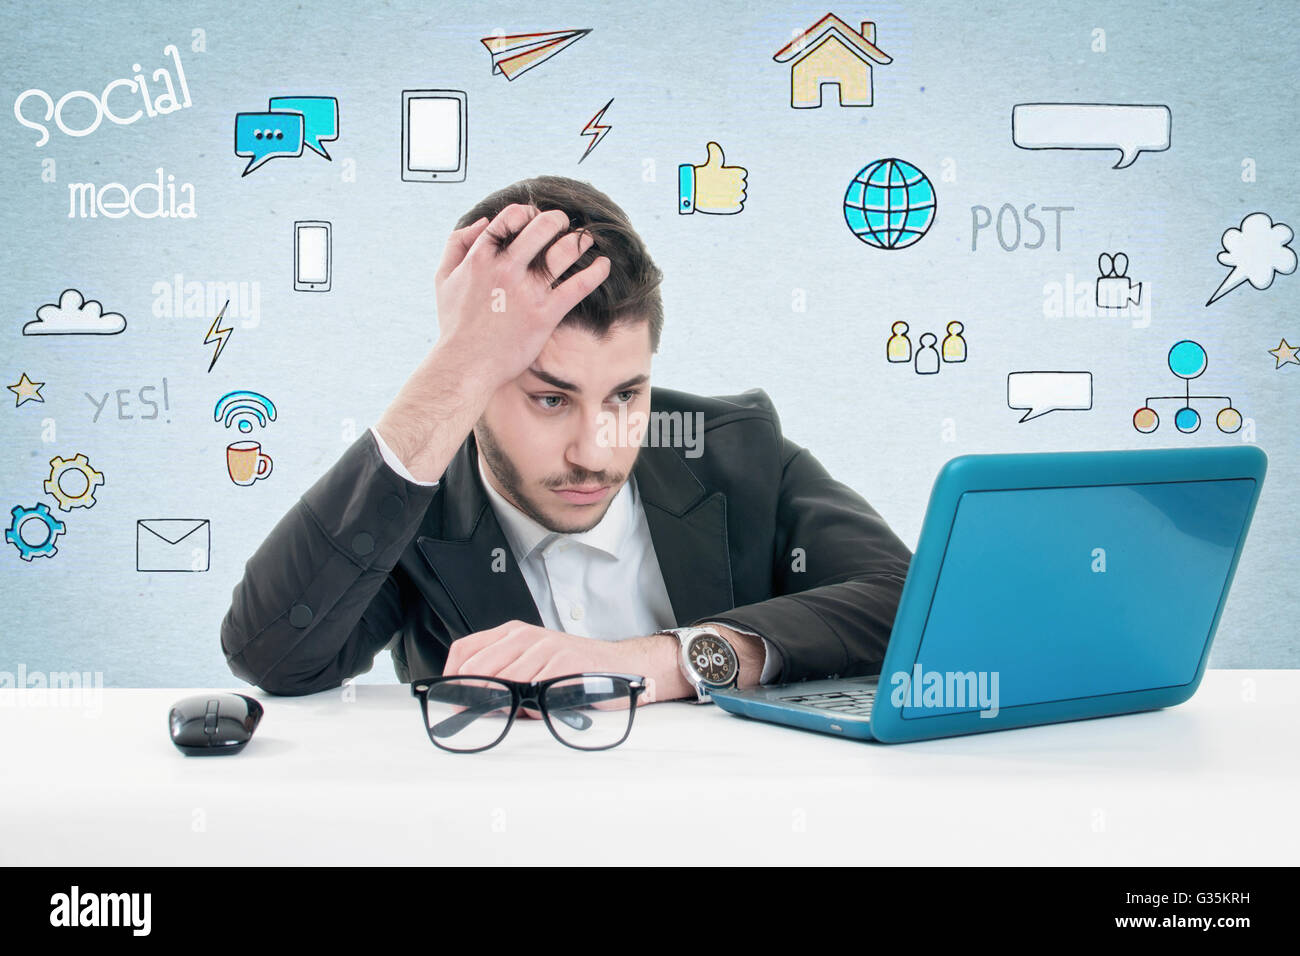 Angry furious businessman working on computer - Stock Image